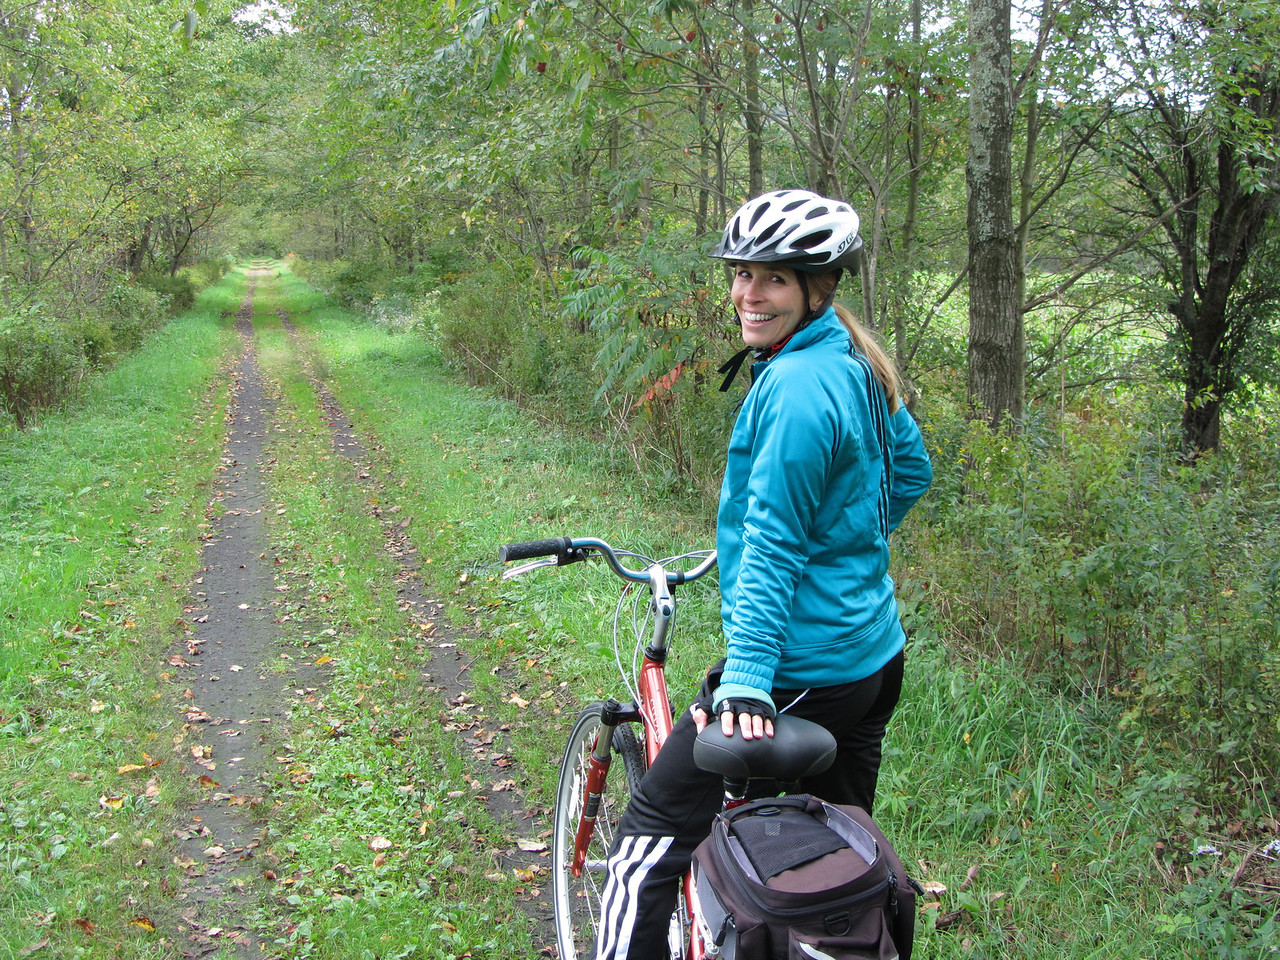 First section of trail was not bad, but definitely not a paved or gravel bike path as pictured in the website.